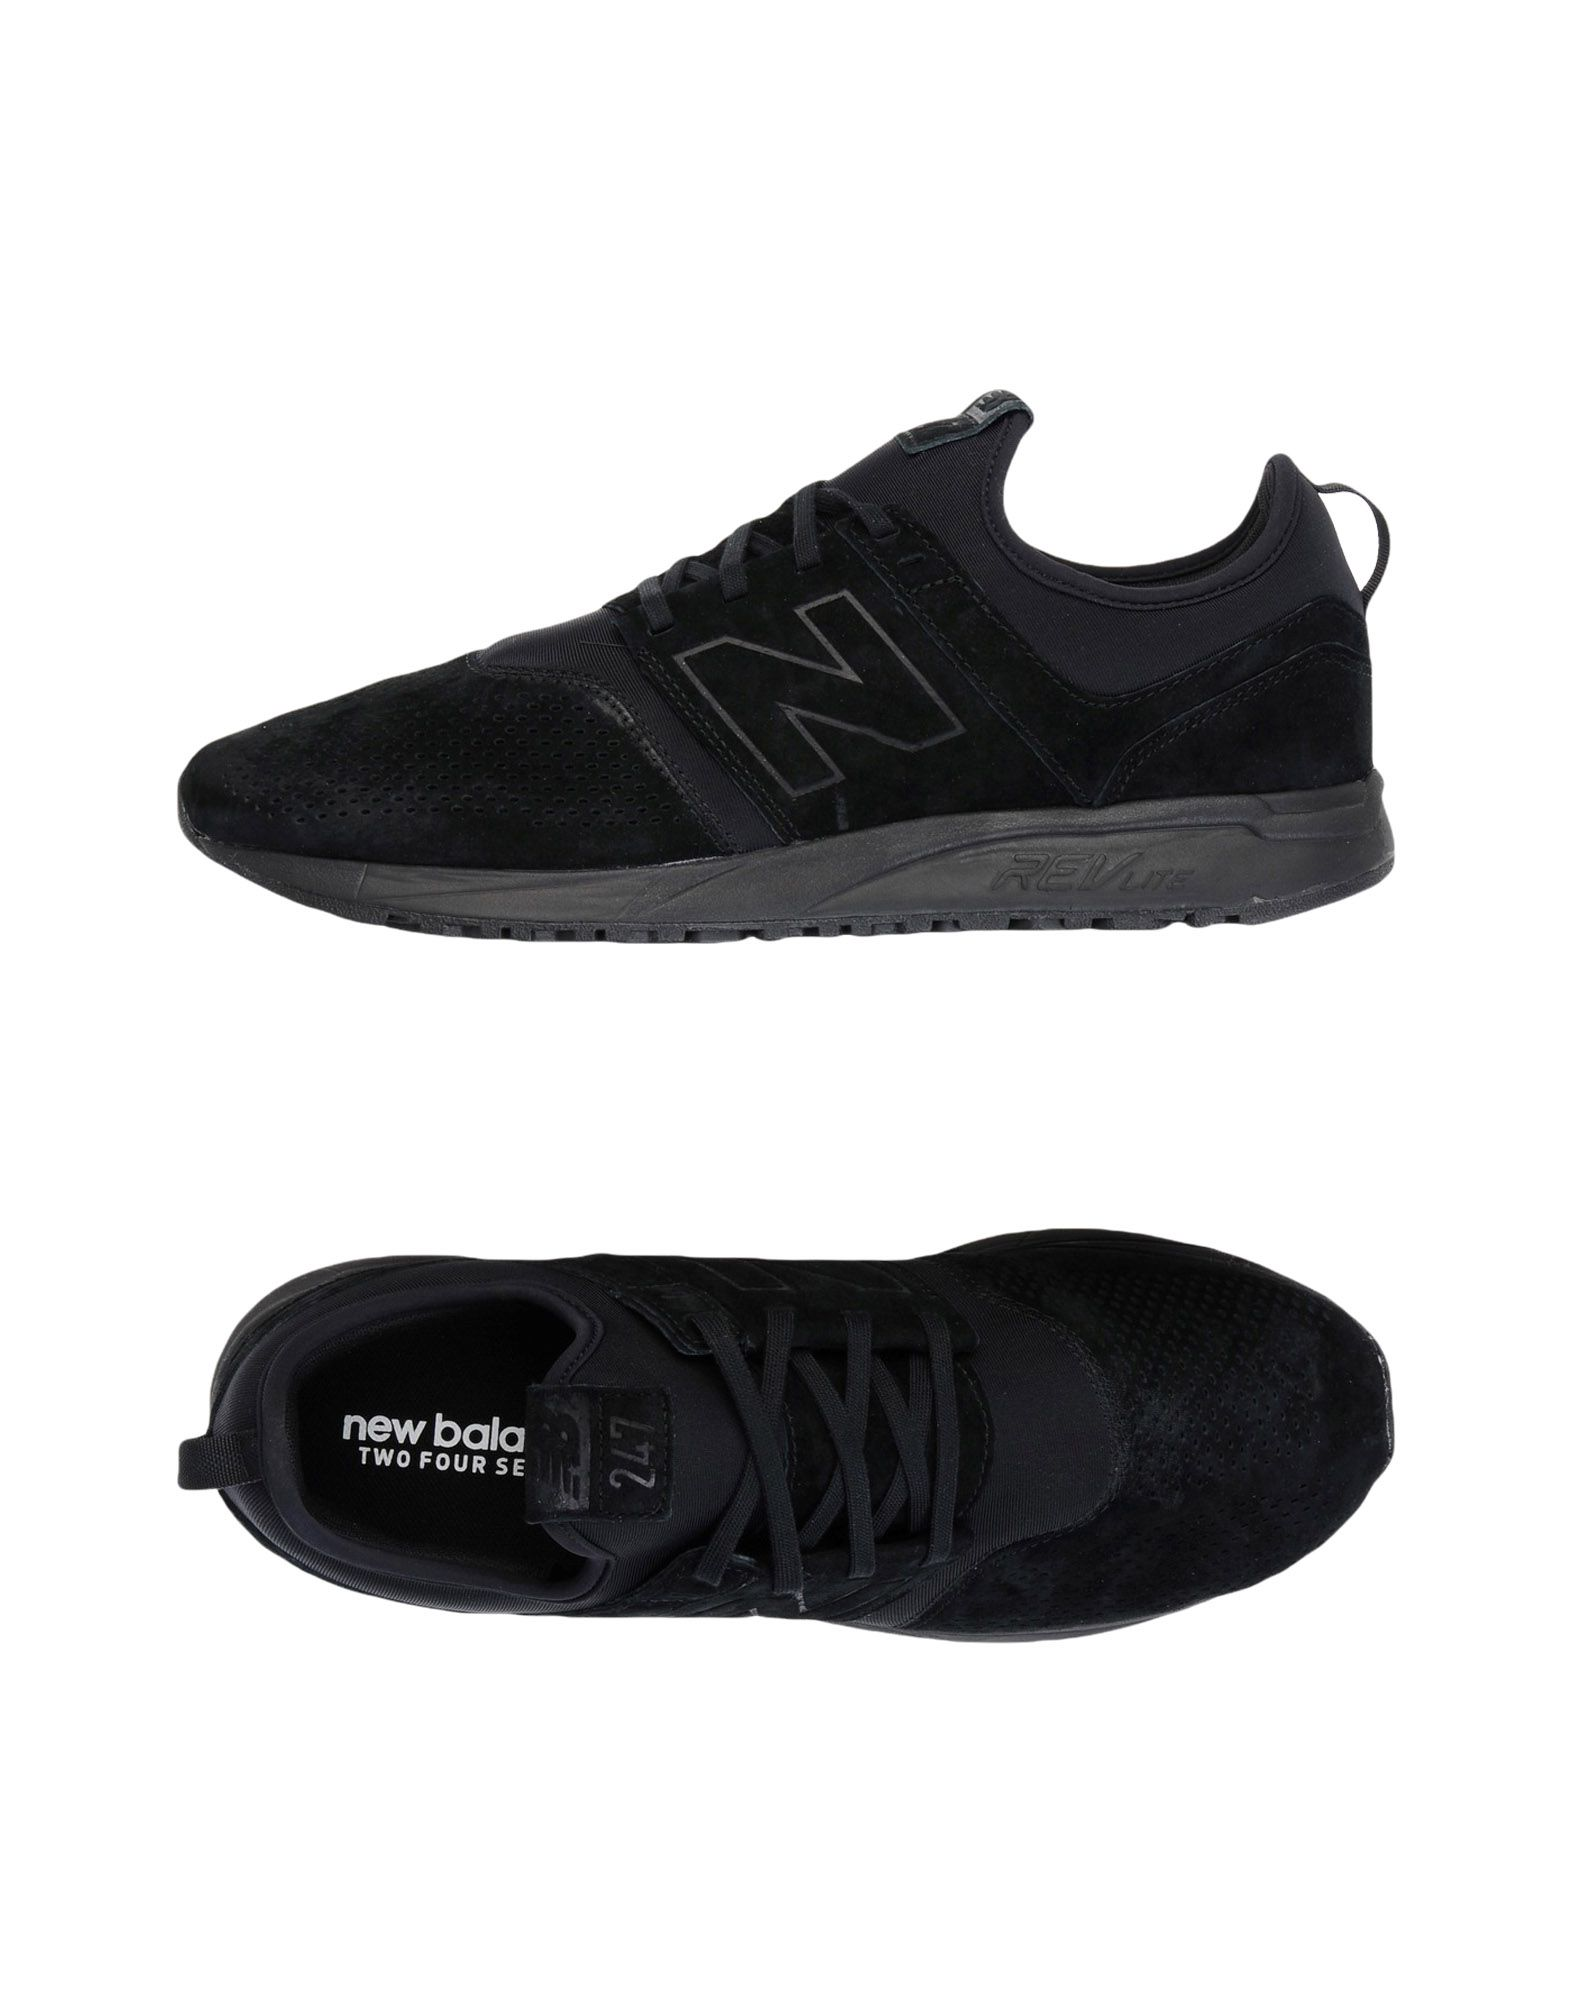 Sneakers New Balance 247 Pigskin Suede - Uomo - 11466946VB